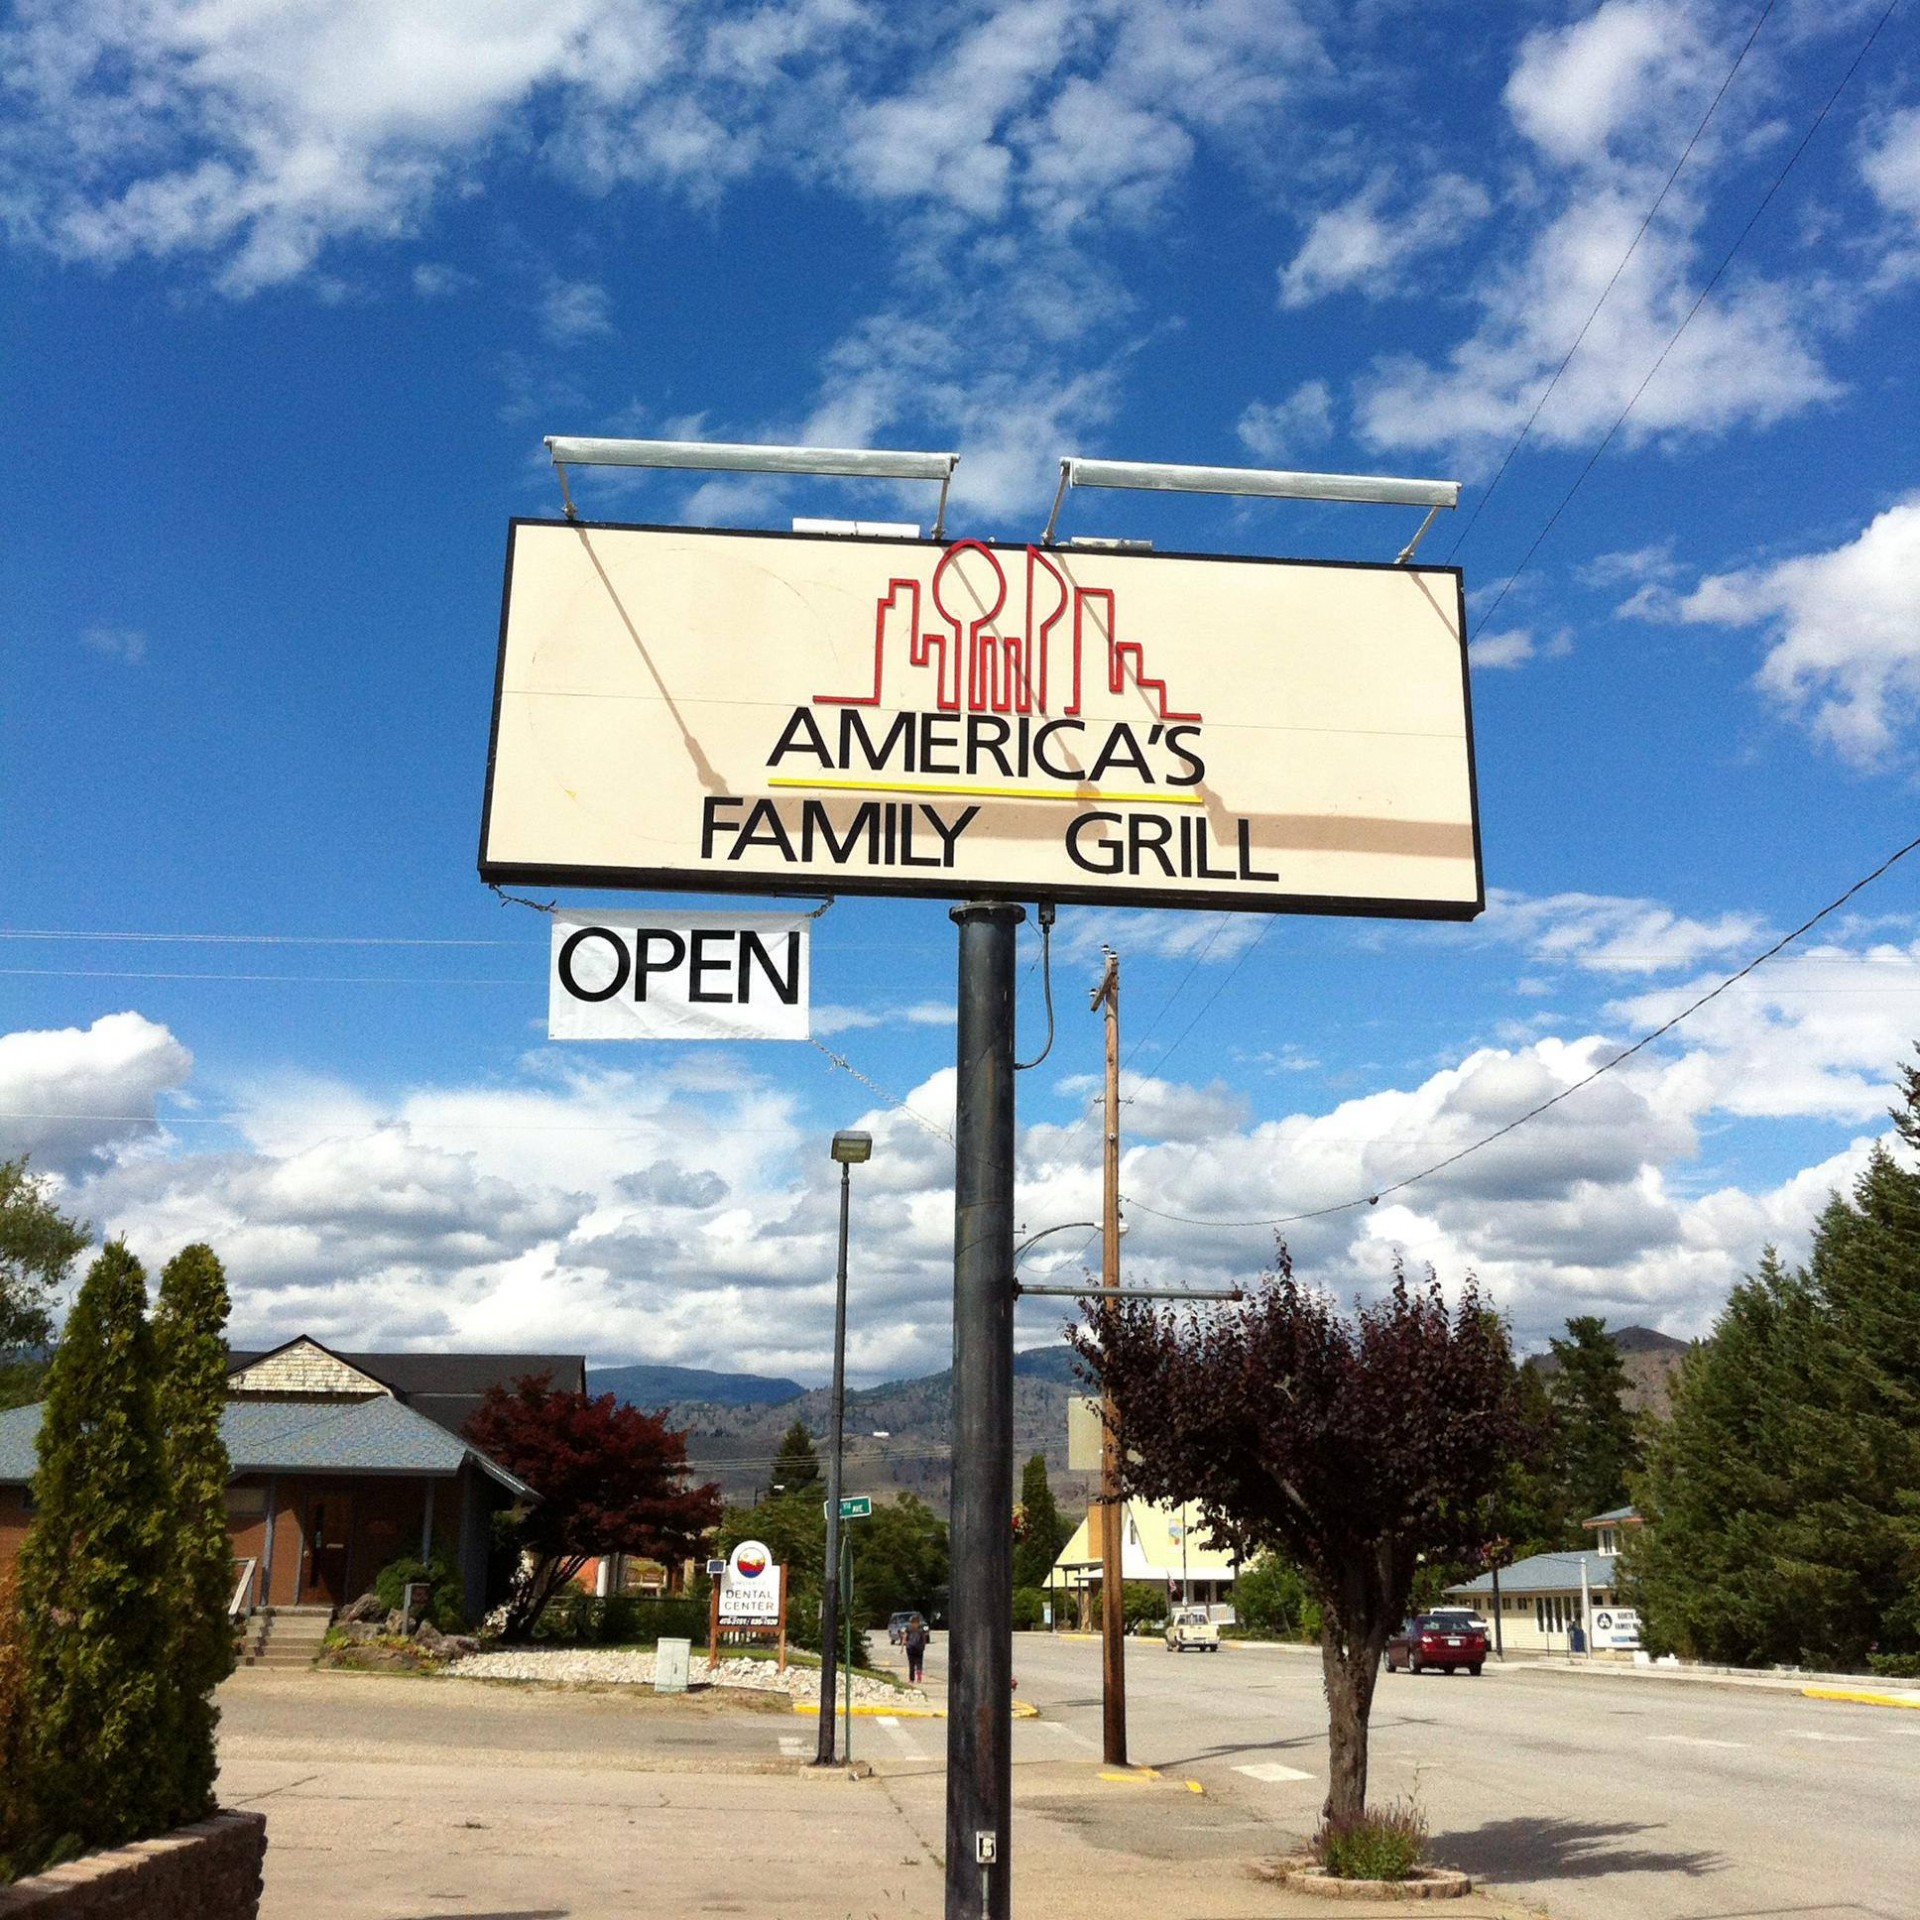 America's Family Grill